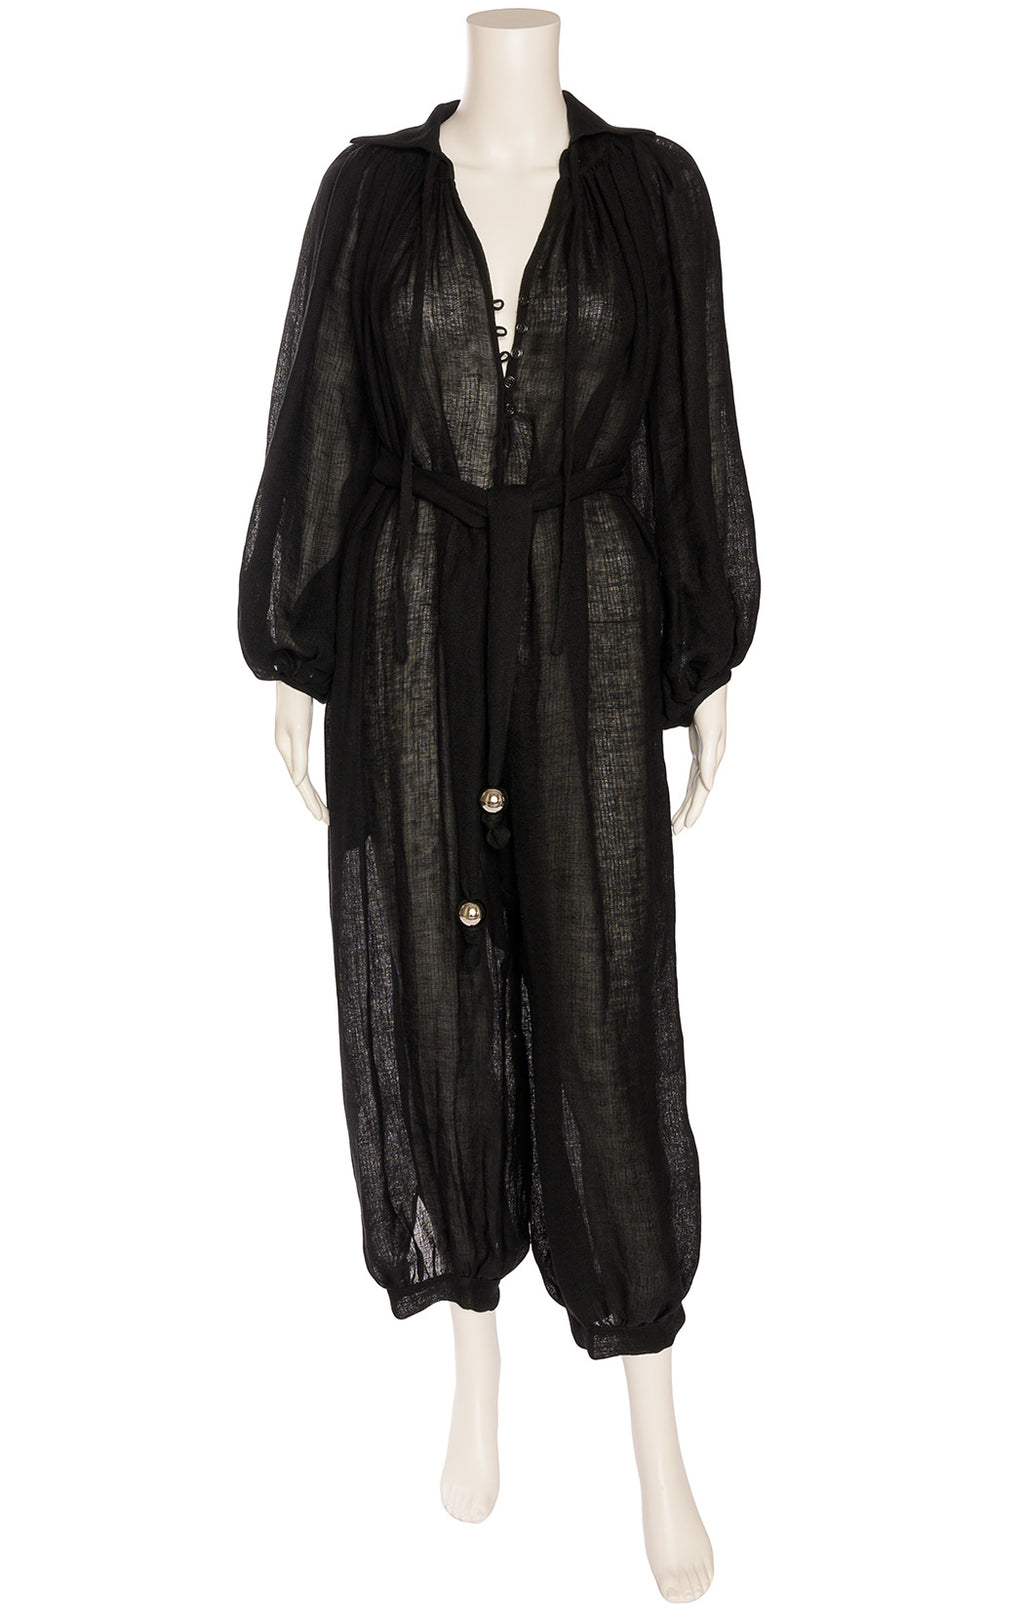 Black full volume jumpsuit with front button closure, collar, full sleeves, side pockets and harem pant bottom with matching belt and gold ball decoration